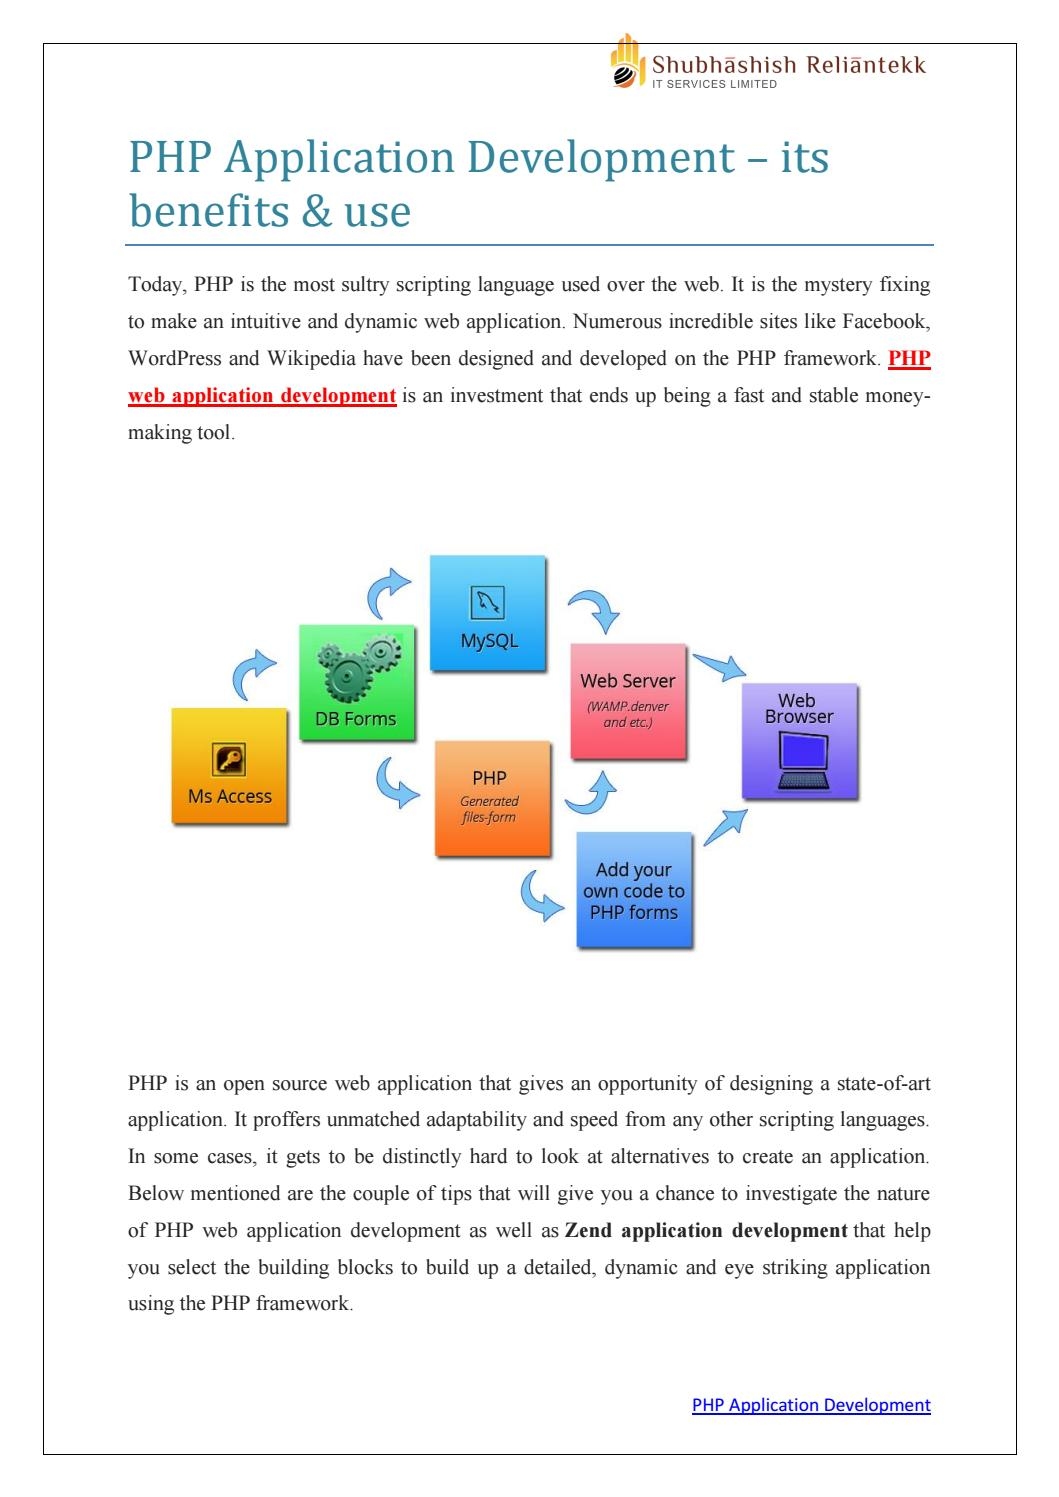 how to develop php application